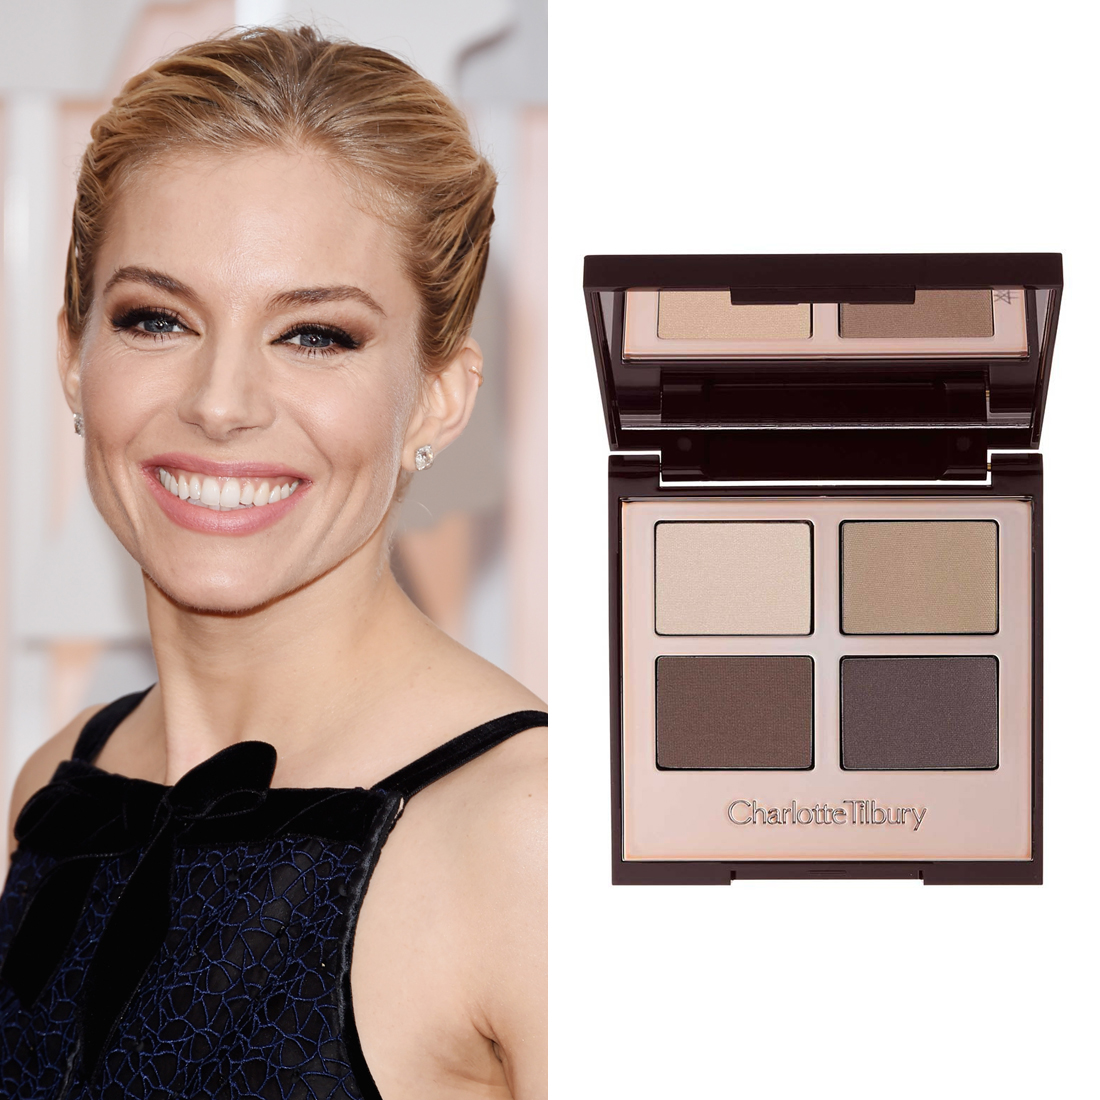 Sienna Miller at the Oscars     Makeup artist  Charlotte Tilbury  used her  Eye Shadow Luxury Palette in The Sophisticate ($88.28) to create a winged shadow shape on Sienna.  Image Source:  Getty    Read More     Oscars Beauty  Charlotte Tilbury  Celebrity Beauty  Sienna Miller  Award Season  Beauty Shopping  Oscars  Golden Globe Awards  Red Carpet